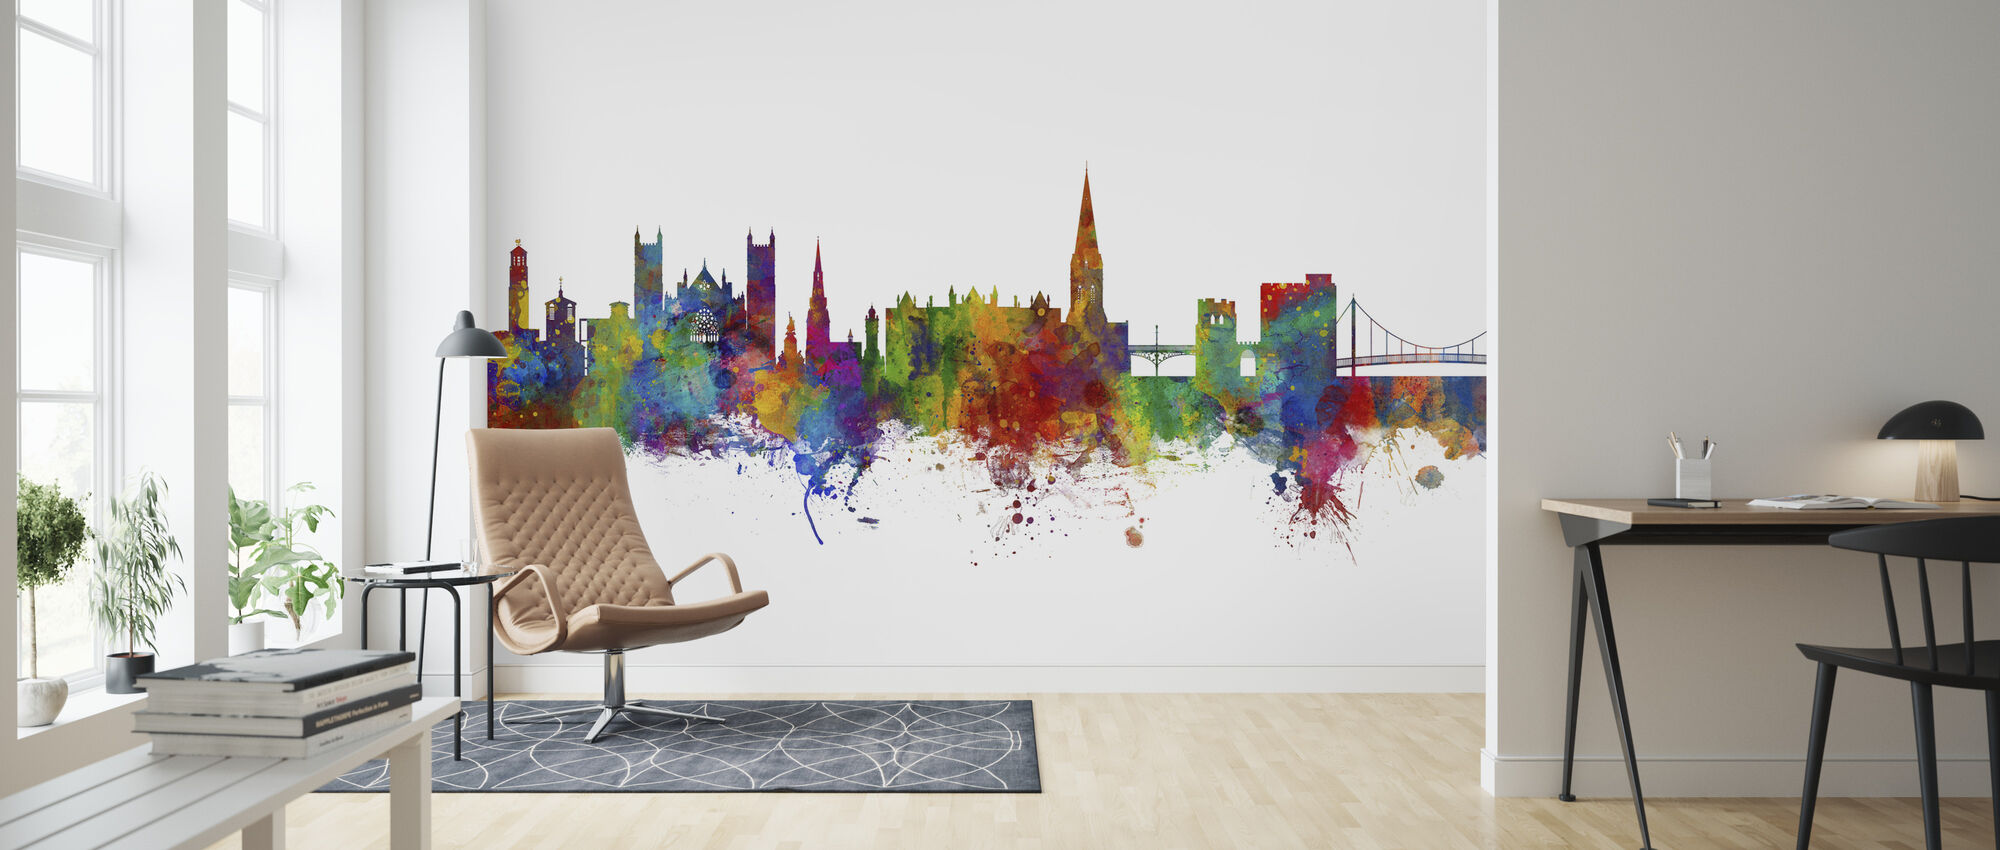 Exeter Skyline - Wallpaper - Living Room